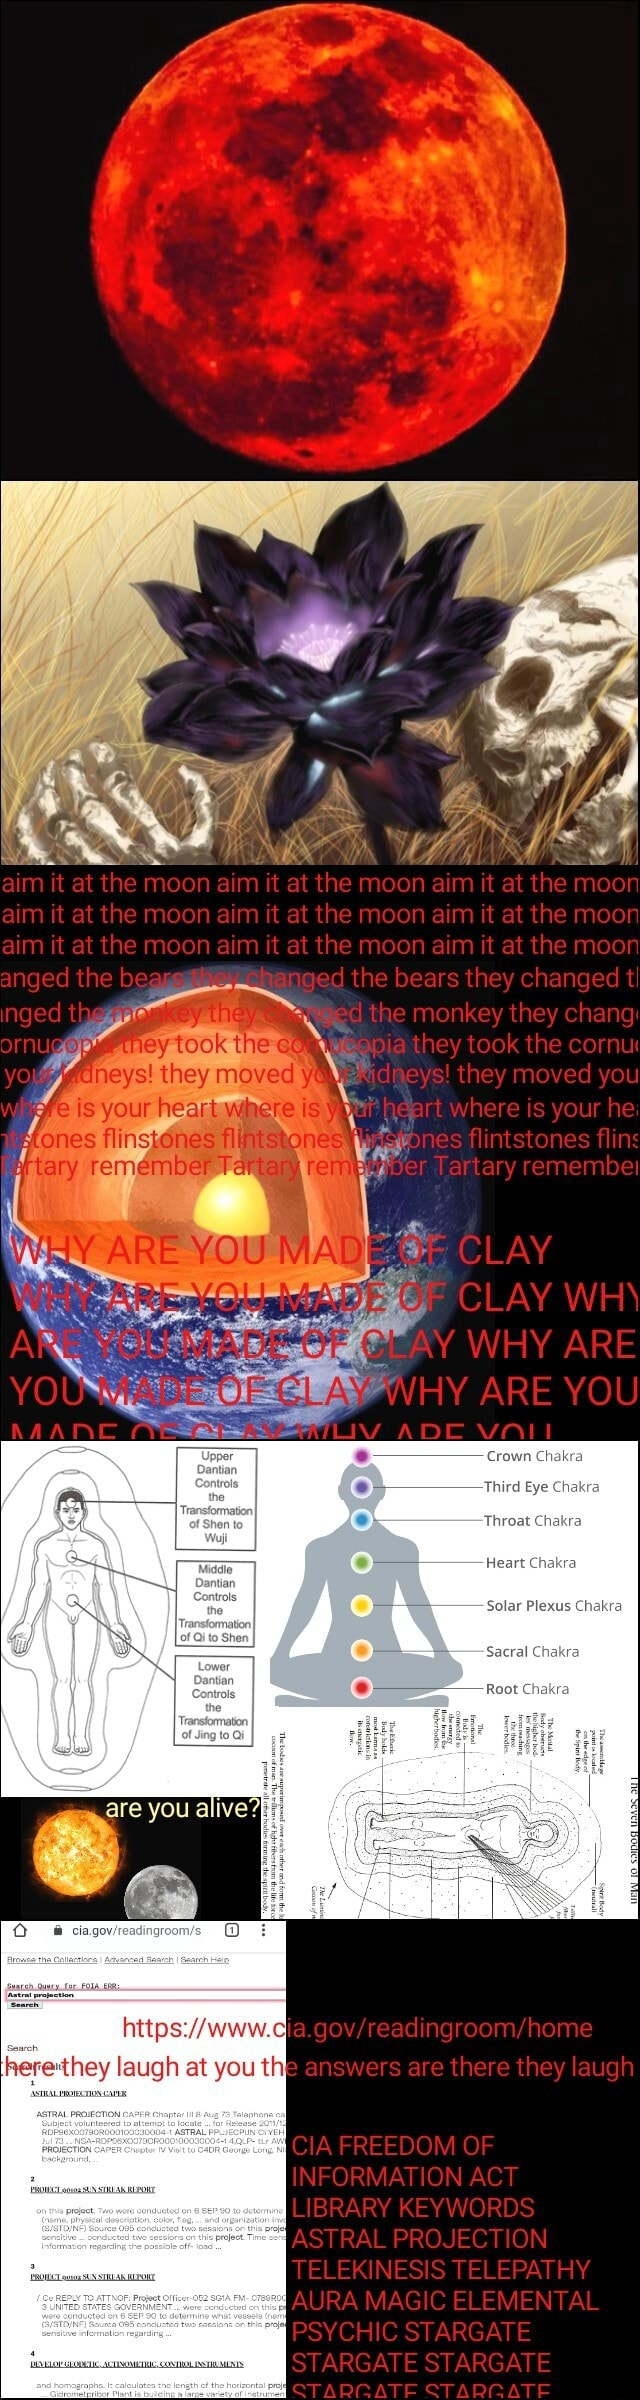 Aim it at the moon aim it at the moon airn it at the moor aim it al the moon aim at the moon it at the moon aim il at the mo it at the moon airn it at the moon anged the be r nged the bears they changed nged t monkey they chang they took the cornu oheysl they moved d they moved you Pes your heart art where is your he ones Mingt6n fliniston fline tary remembel YOU la, CLAY CLAY WHY ARE ARE YOU Throat Chakra Chakra erethey laugh at you th} home IA TREEDOM OF INFORMATION ACT TELEKINESIS TELEPATHY AURA MAGIC ELEMENTAL PSYCHIC STARGATE STARGATE STARGATE ATE ATE memes